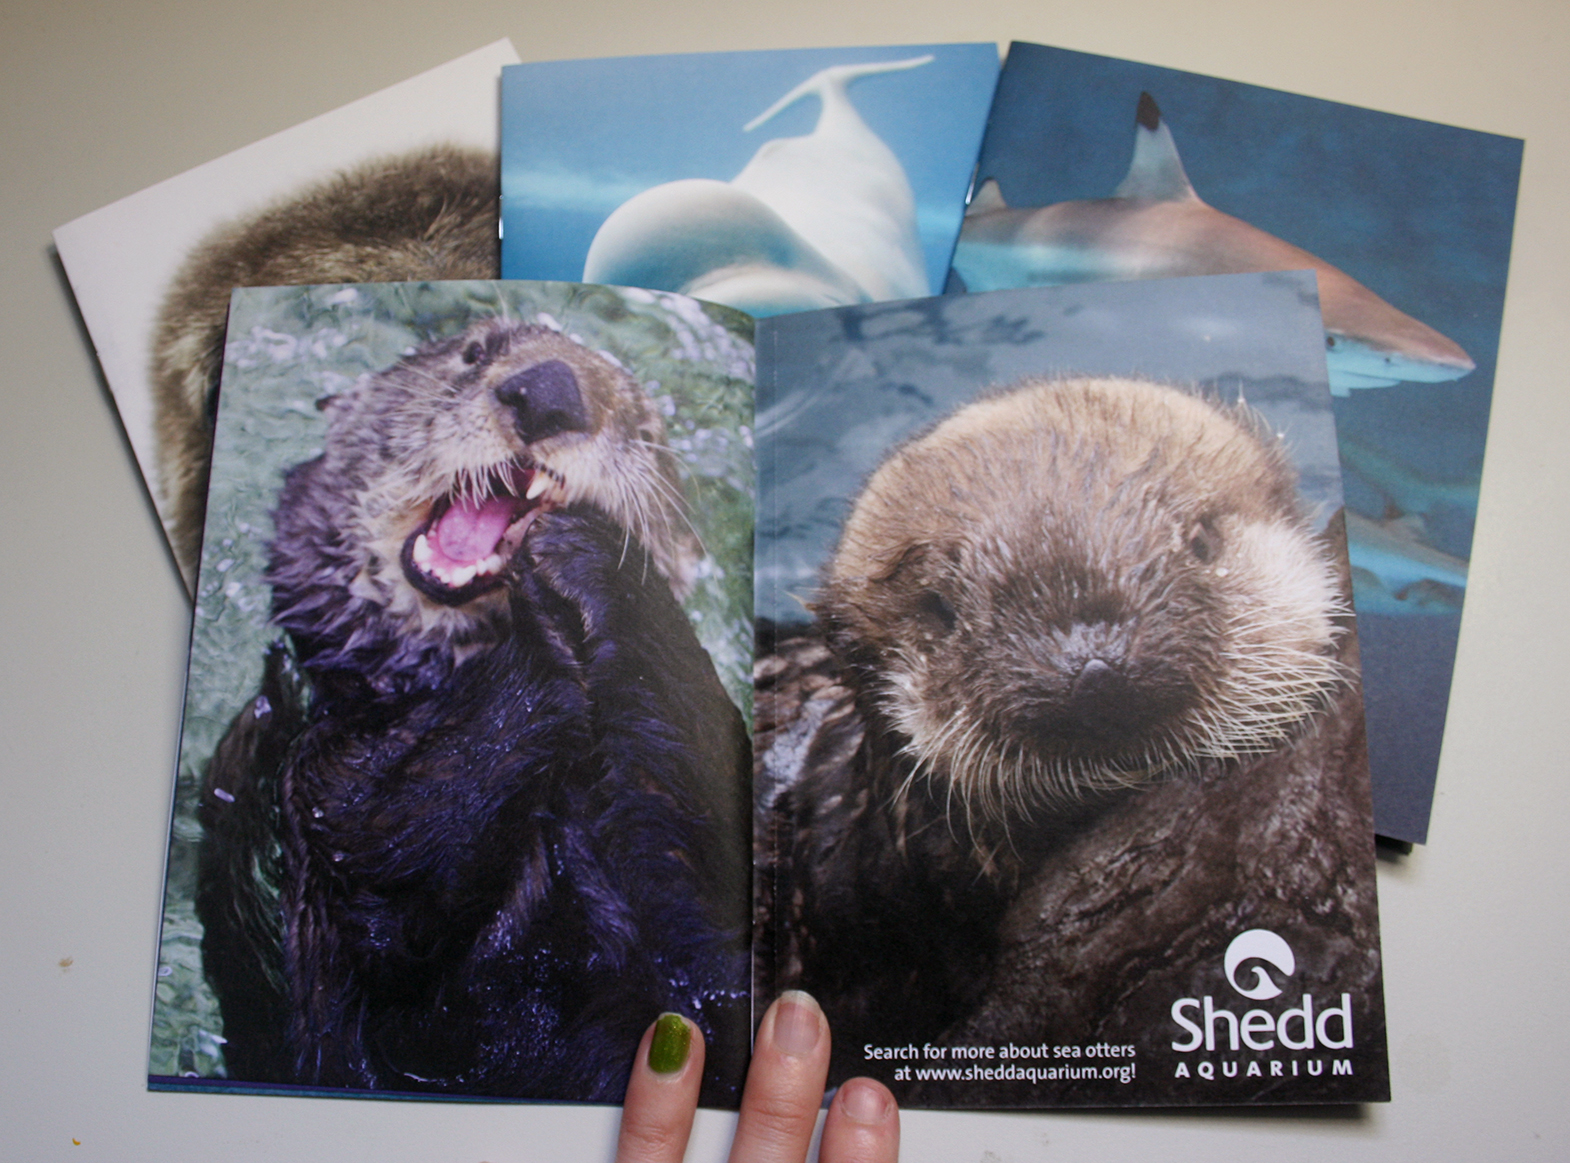 A booklet is shown opened to two photos of sea otters. The sea otter on the left is contorting its mouth to crack open a clam shell, and the otter on the right, a pup, is fluffy and looking up at the camera from the water.